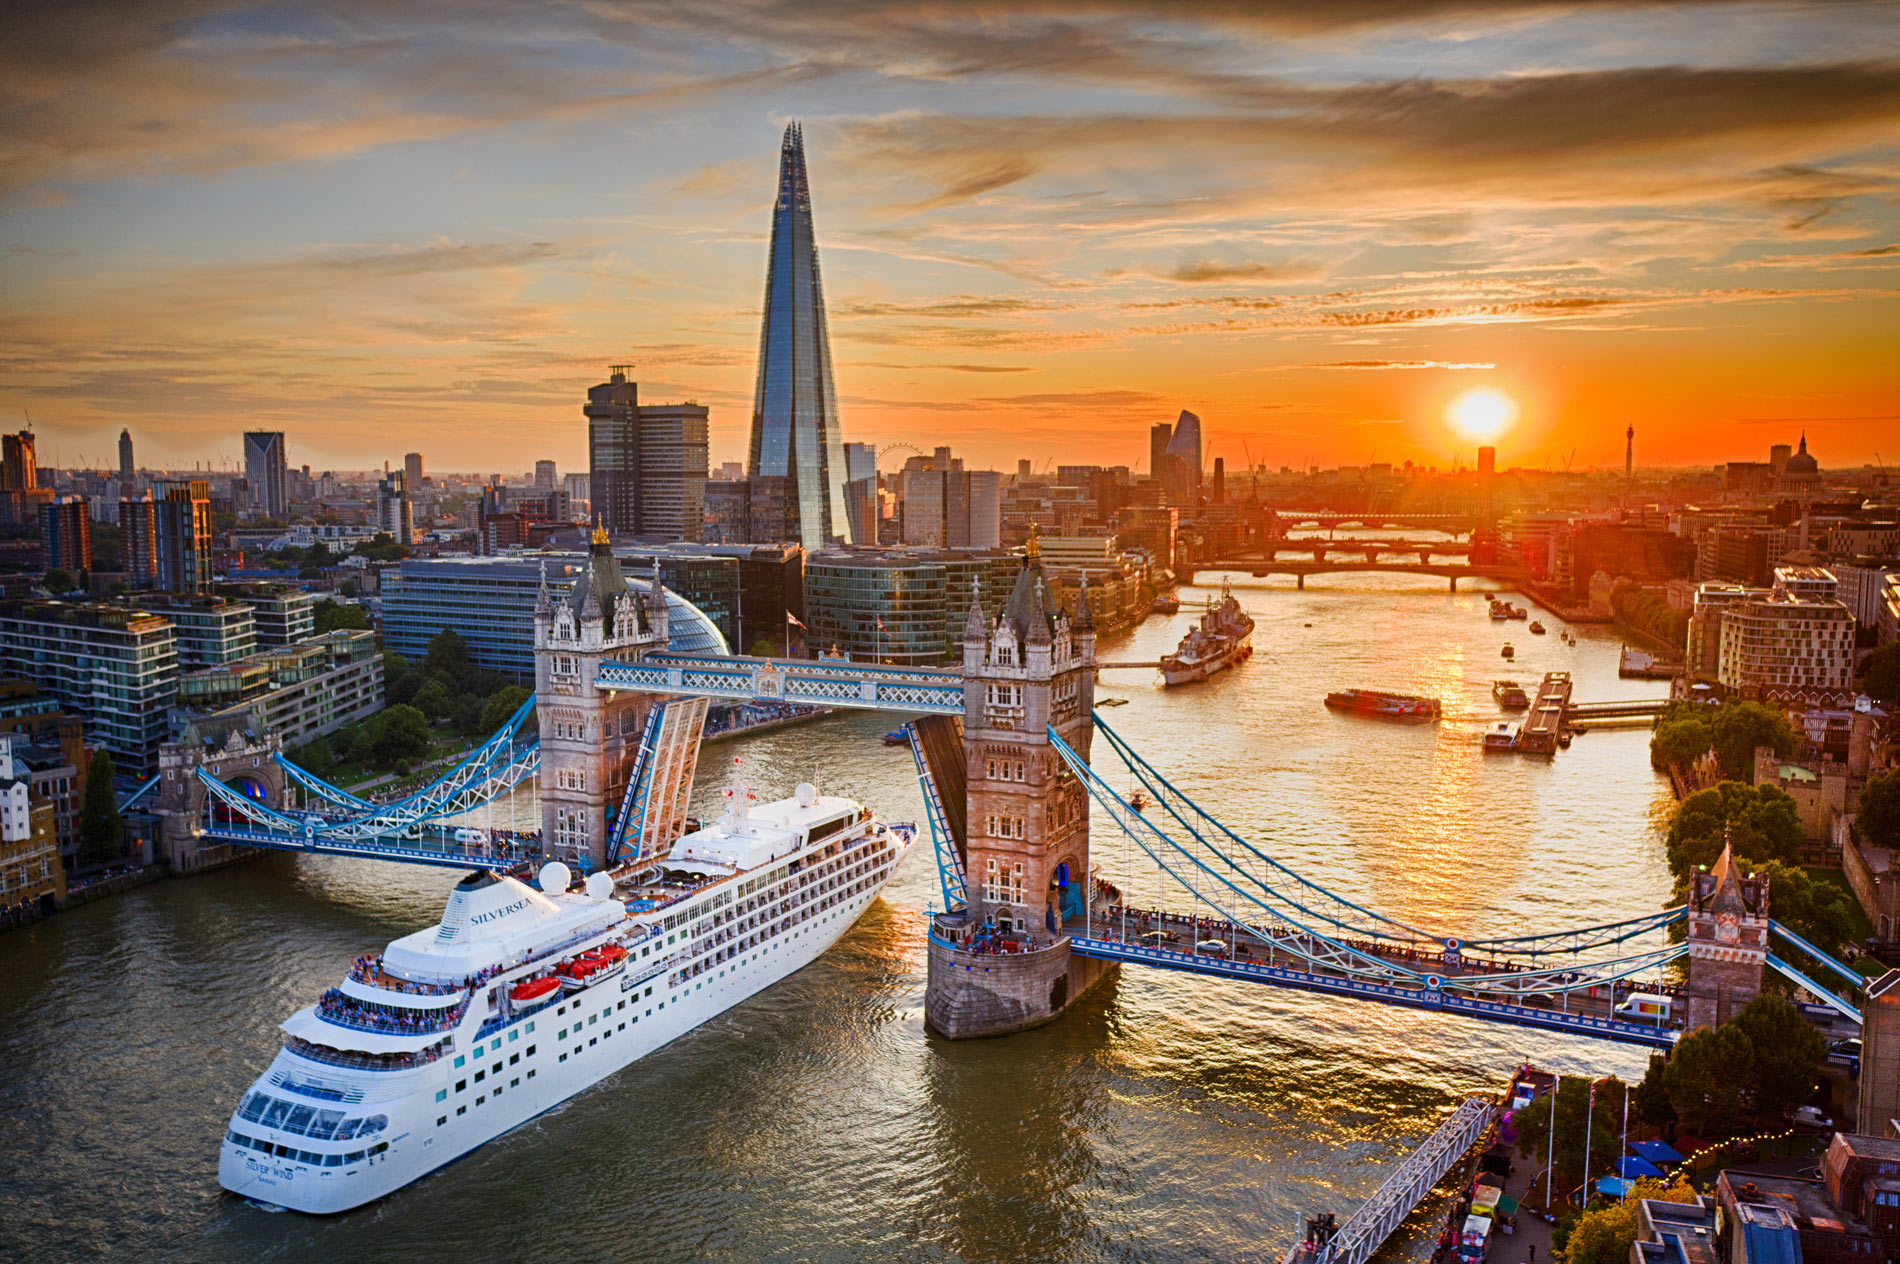 London Cruise Ship